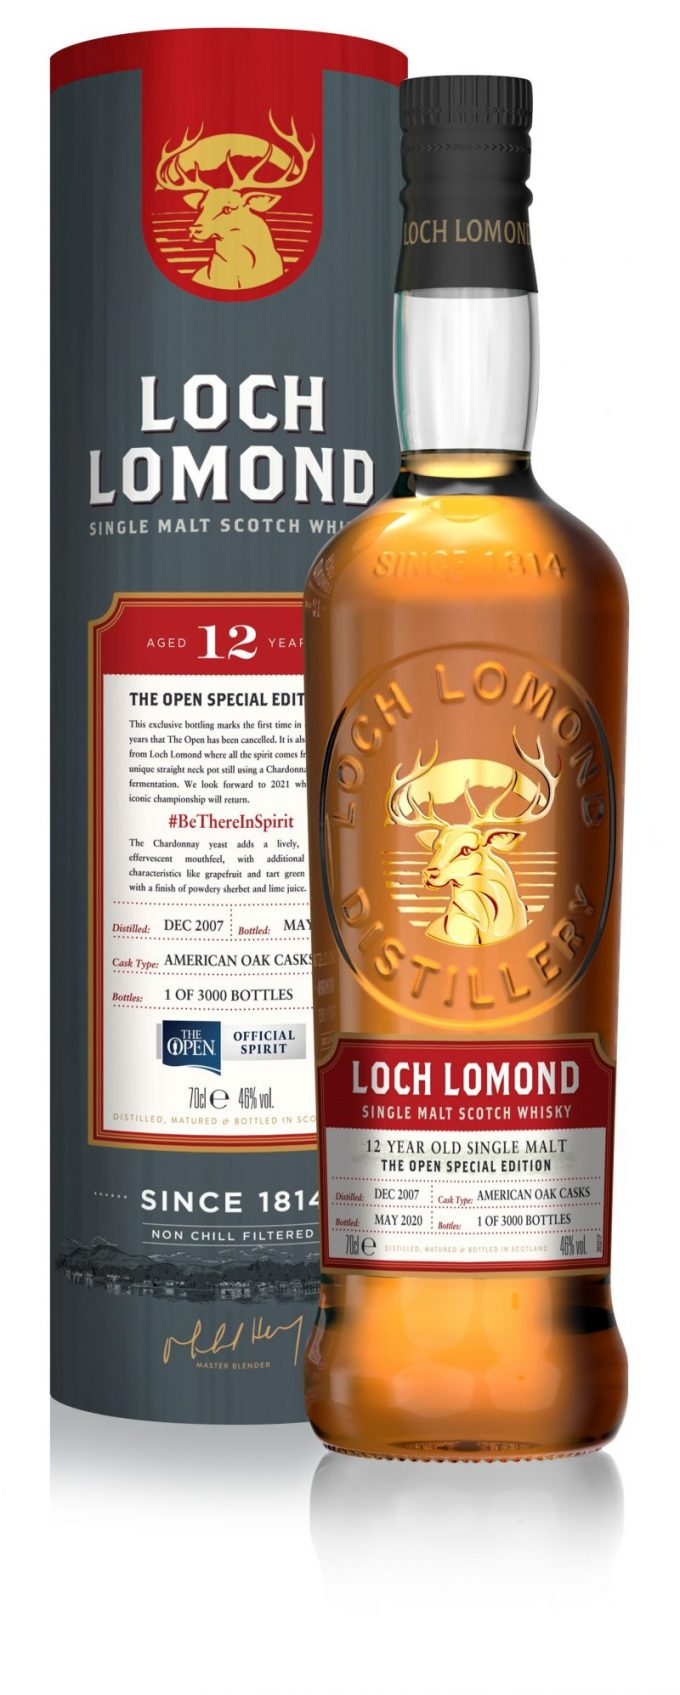 Loch Lomond releases a very special limited edition Whisky to celebrate The Open that never was